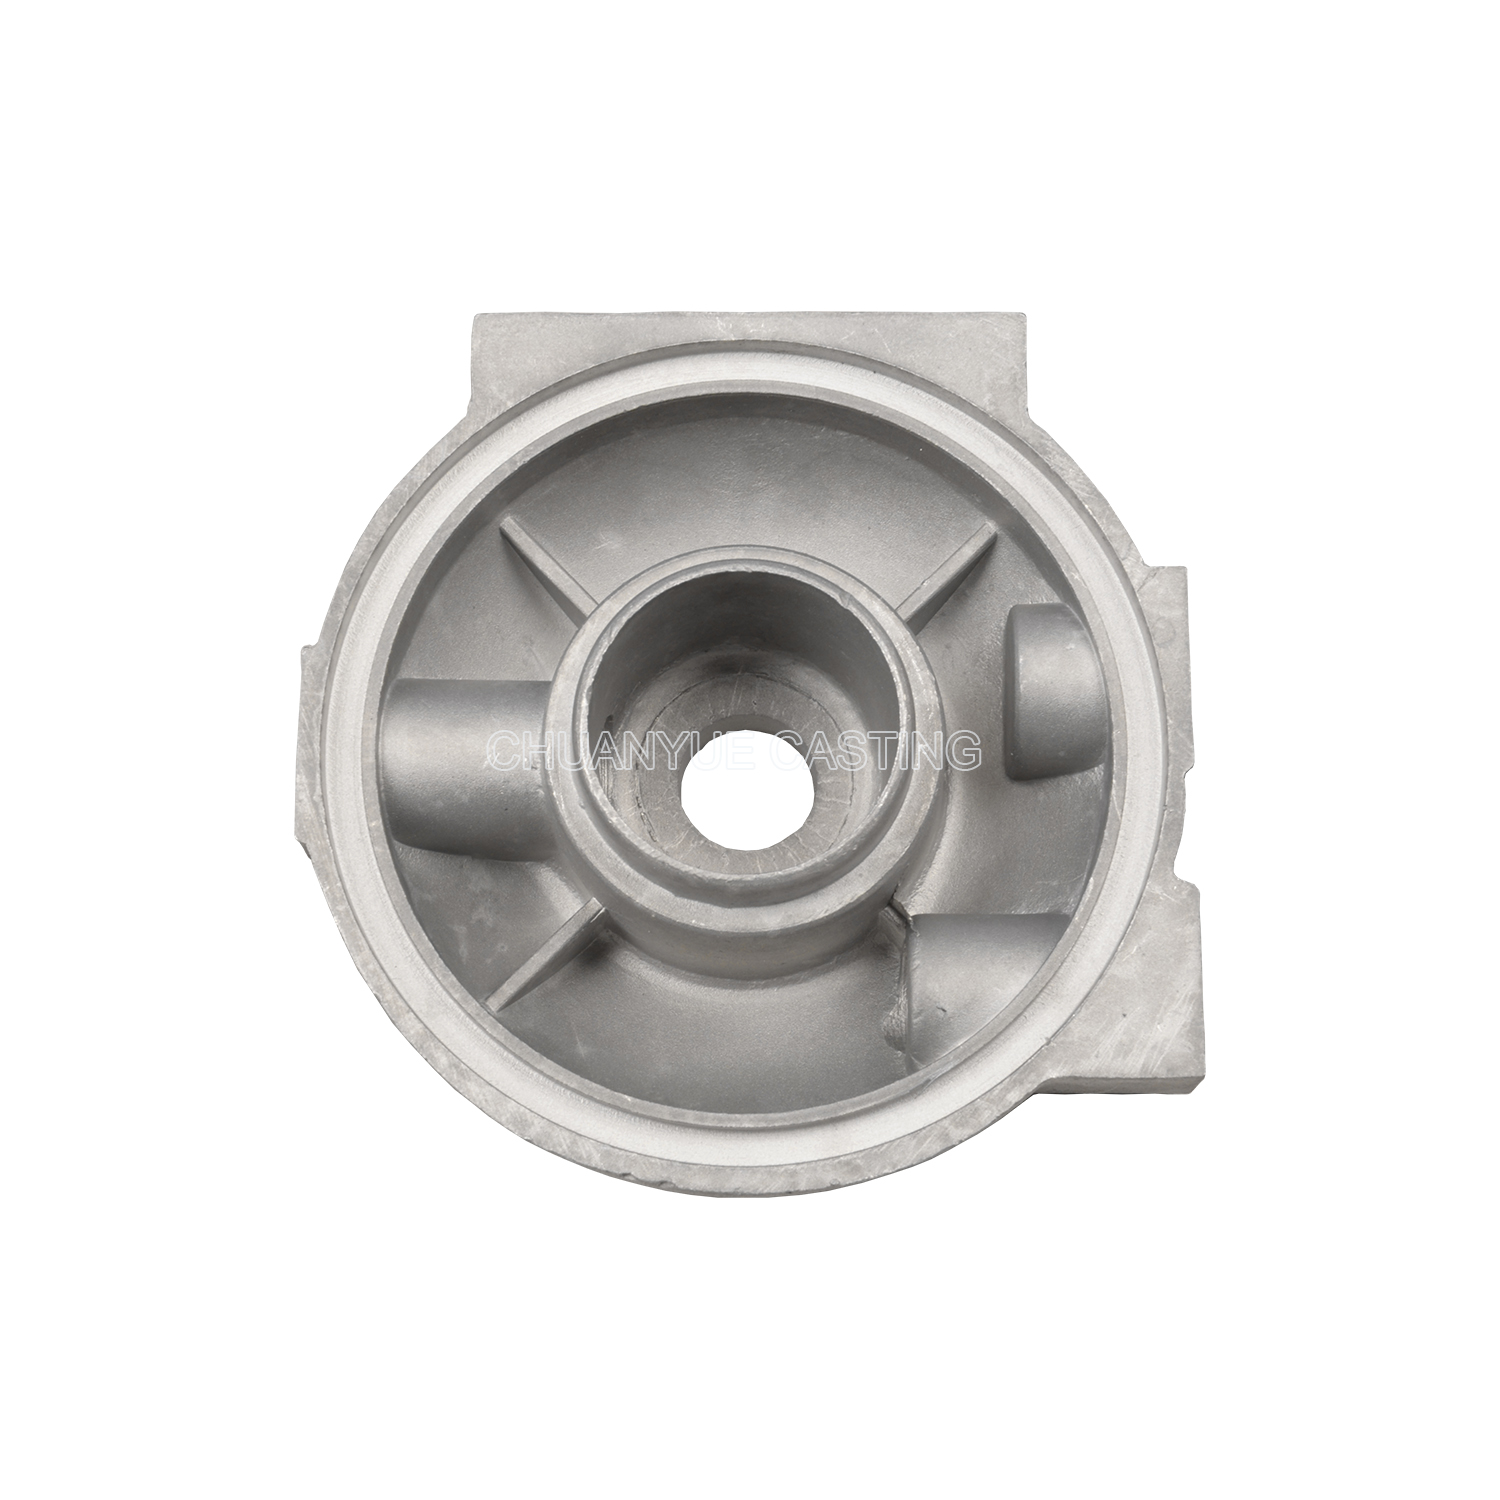 Aluminum Die Casting for Oil Filter Housing Auto Spare Parts